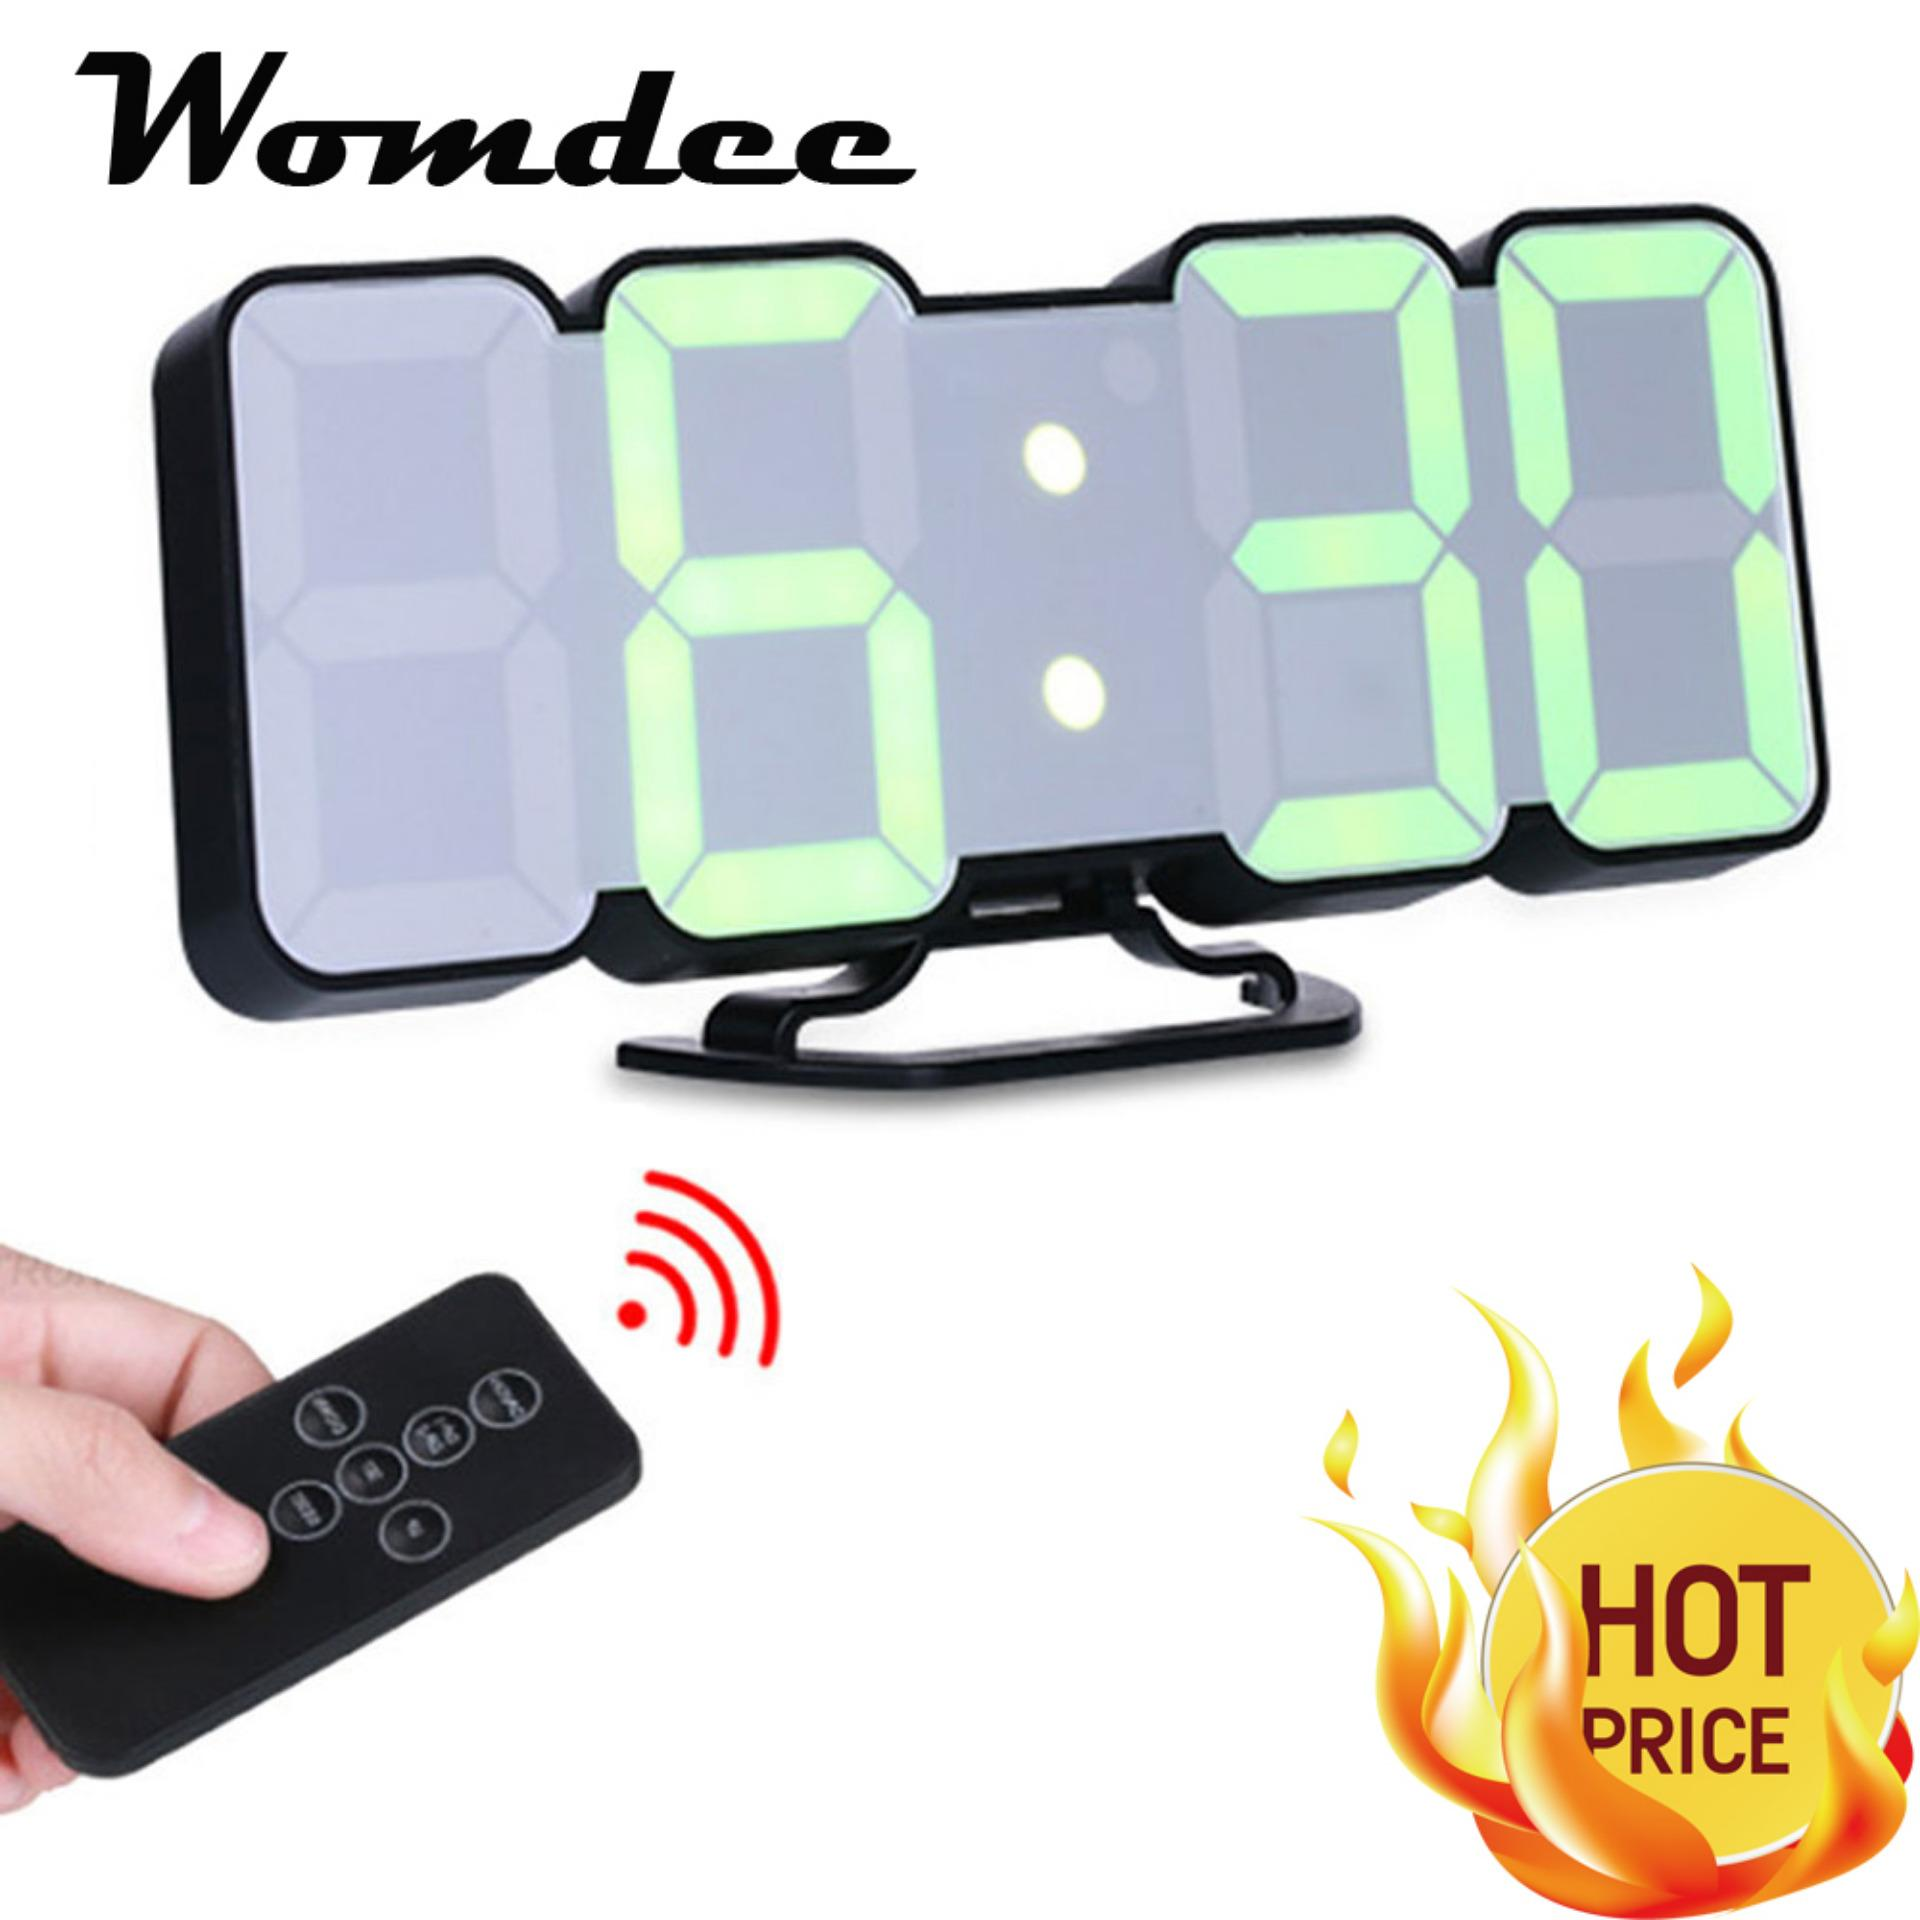 Discount Womdee Led Digital Clock Remote Control Voice Control 3D Led Digital Alarm Clock Display Time Date Temperature In 115 Colors For Desktop Wall Clock Home Decoration Intl China